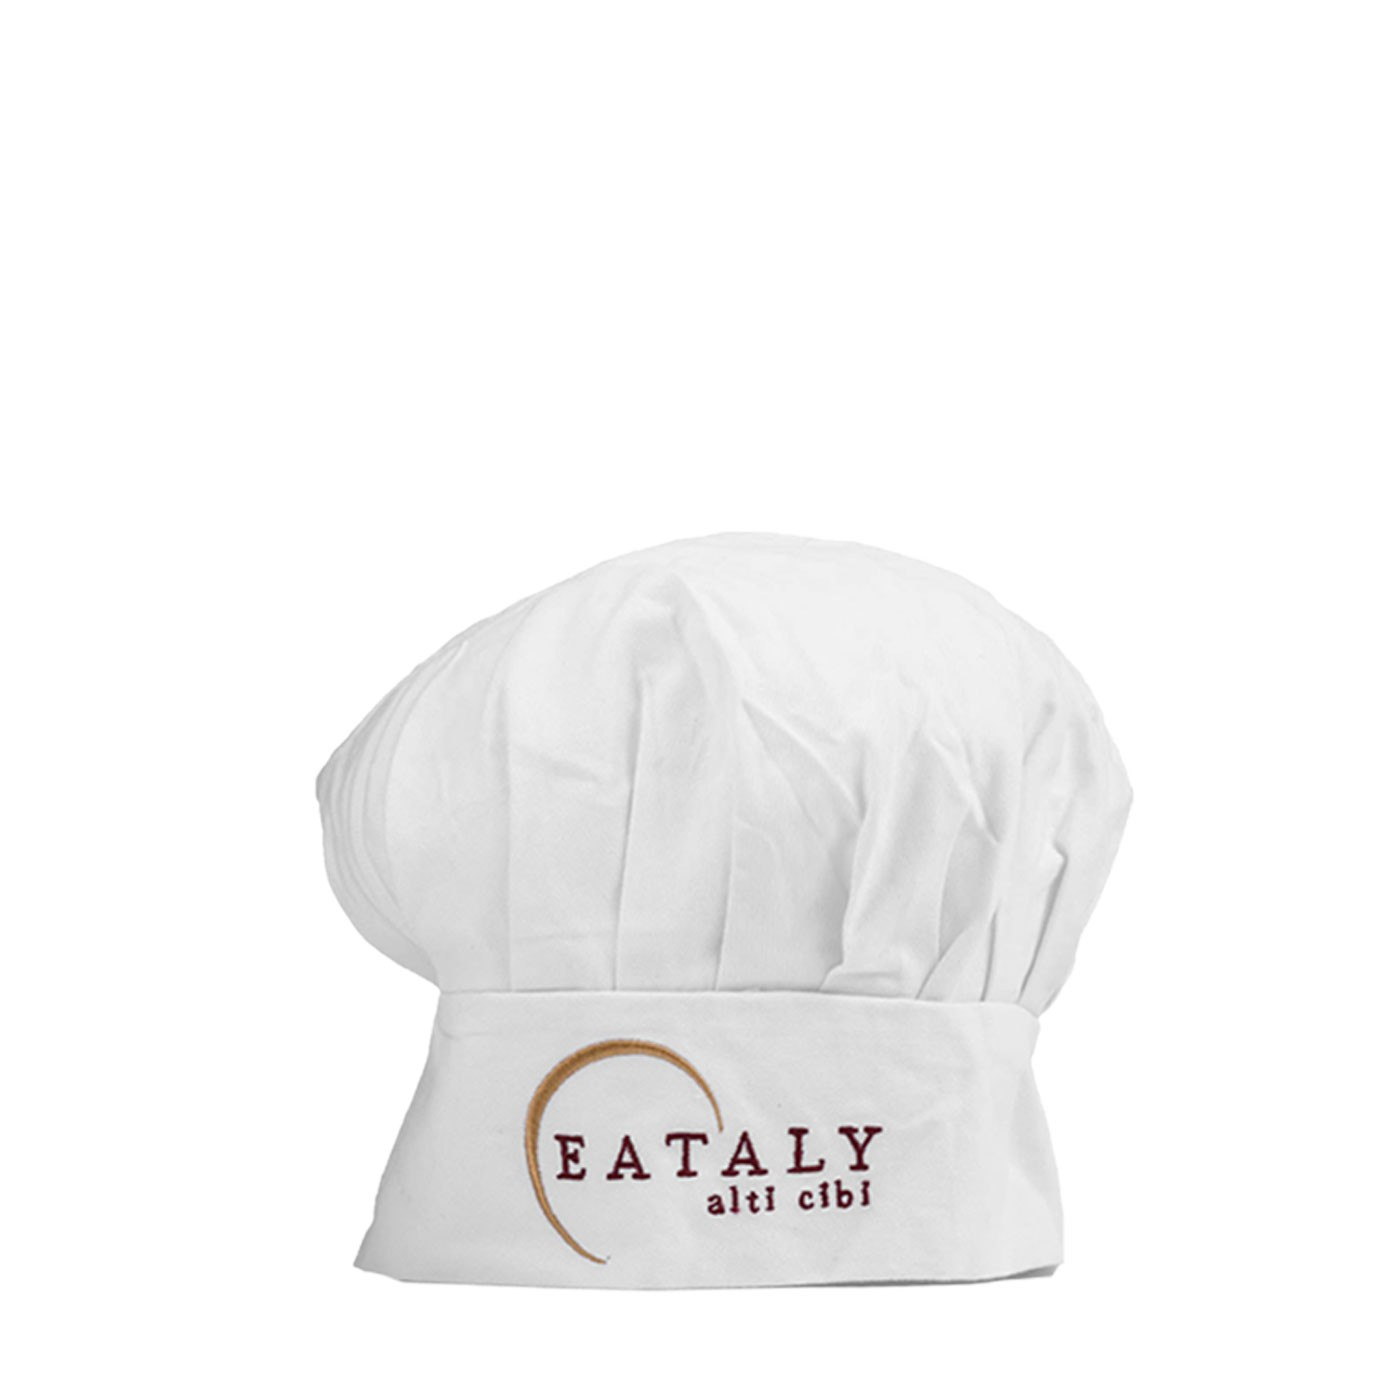 White Eataly Chef Hat